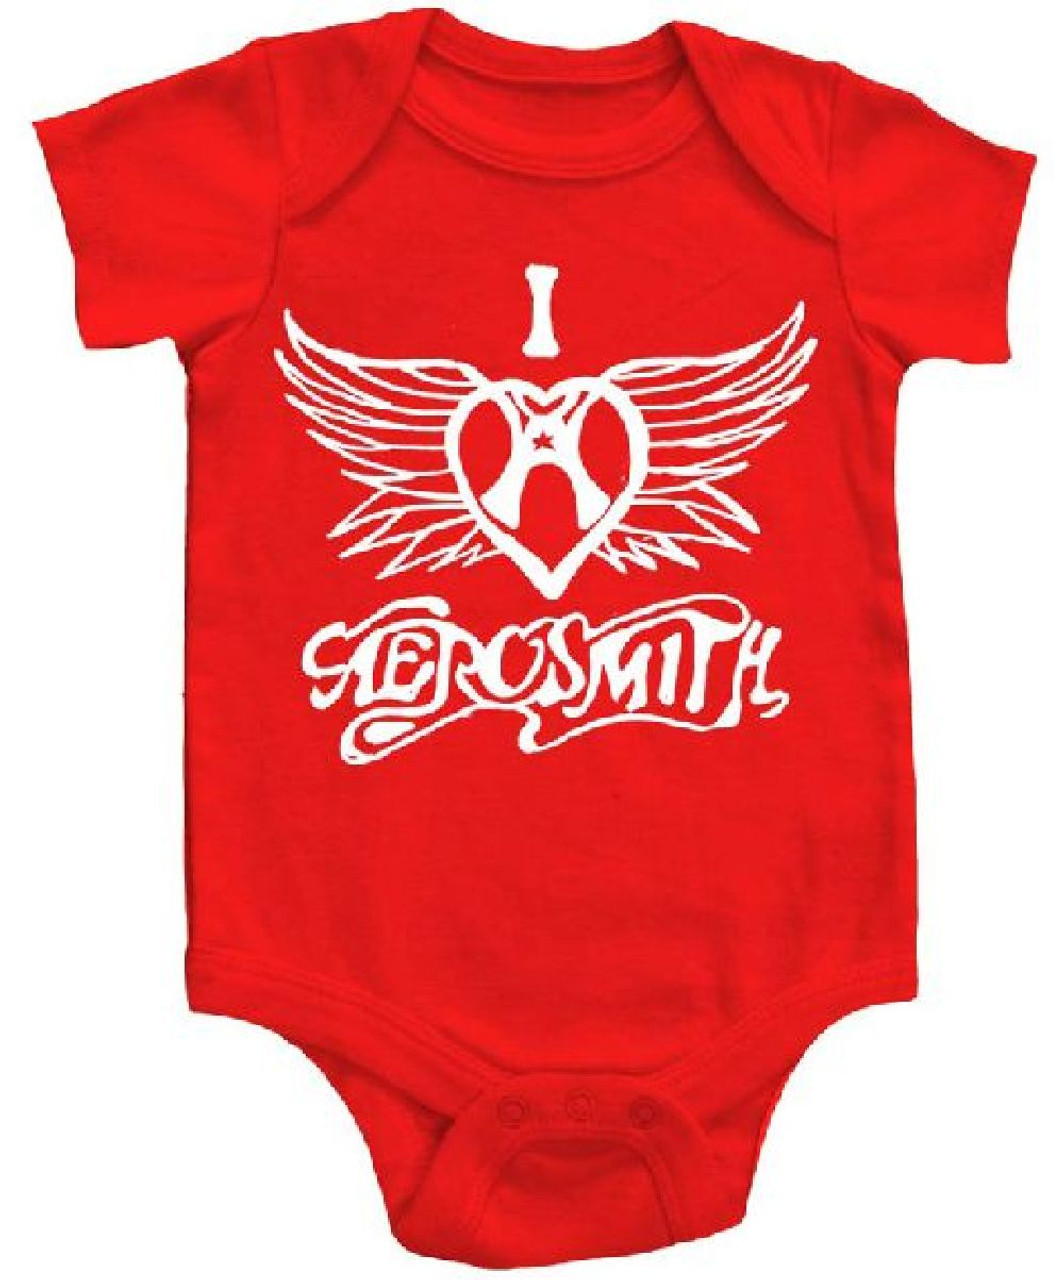 b7be97158 Aersomith I Heart Aersomith Logo Baby Onesie Infant Romper Suit in Red